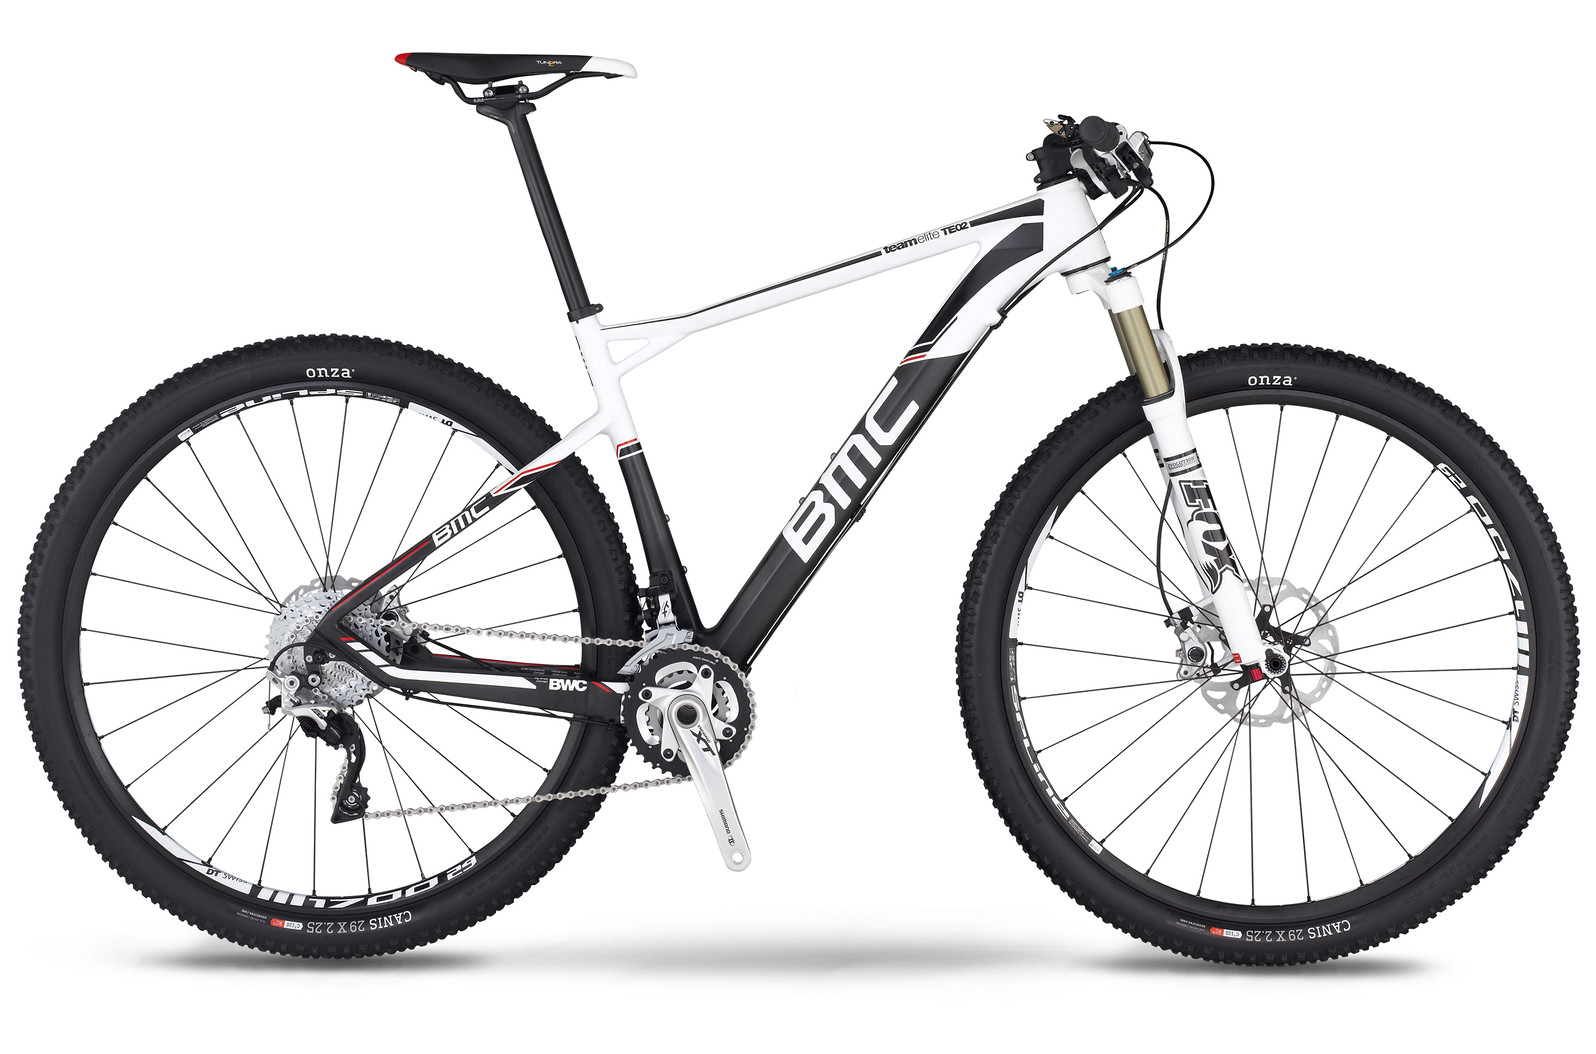 bike - 2014 BMC Teamelite TE02 29 with XT